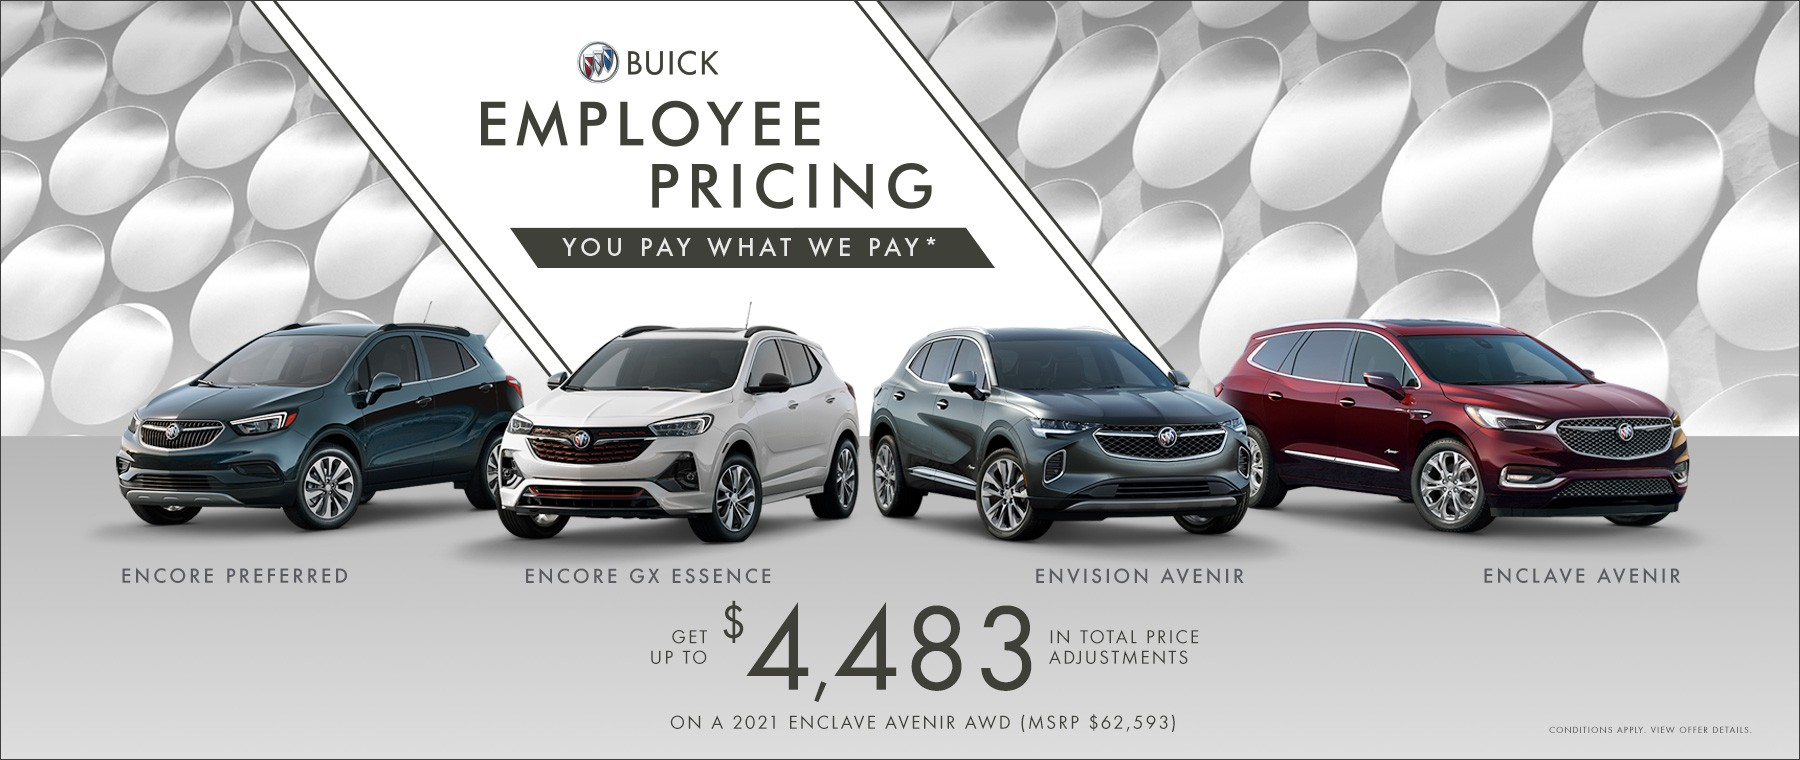 Employee Pricing – Buick Family